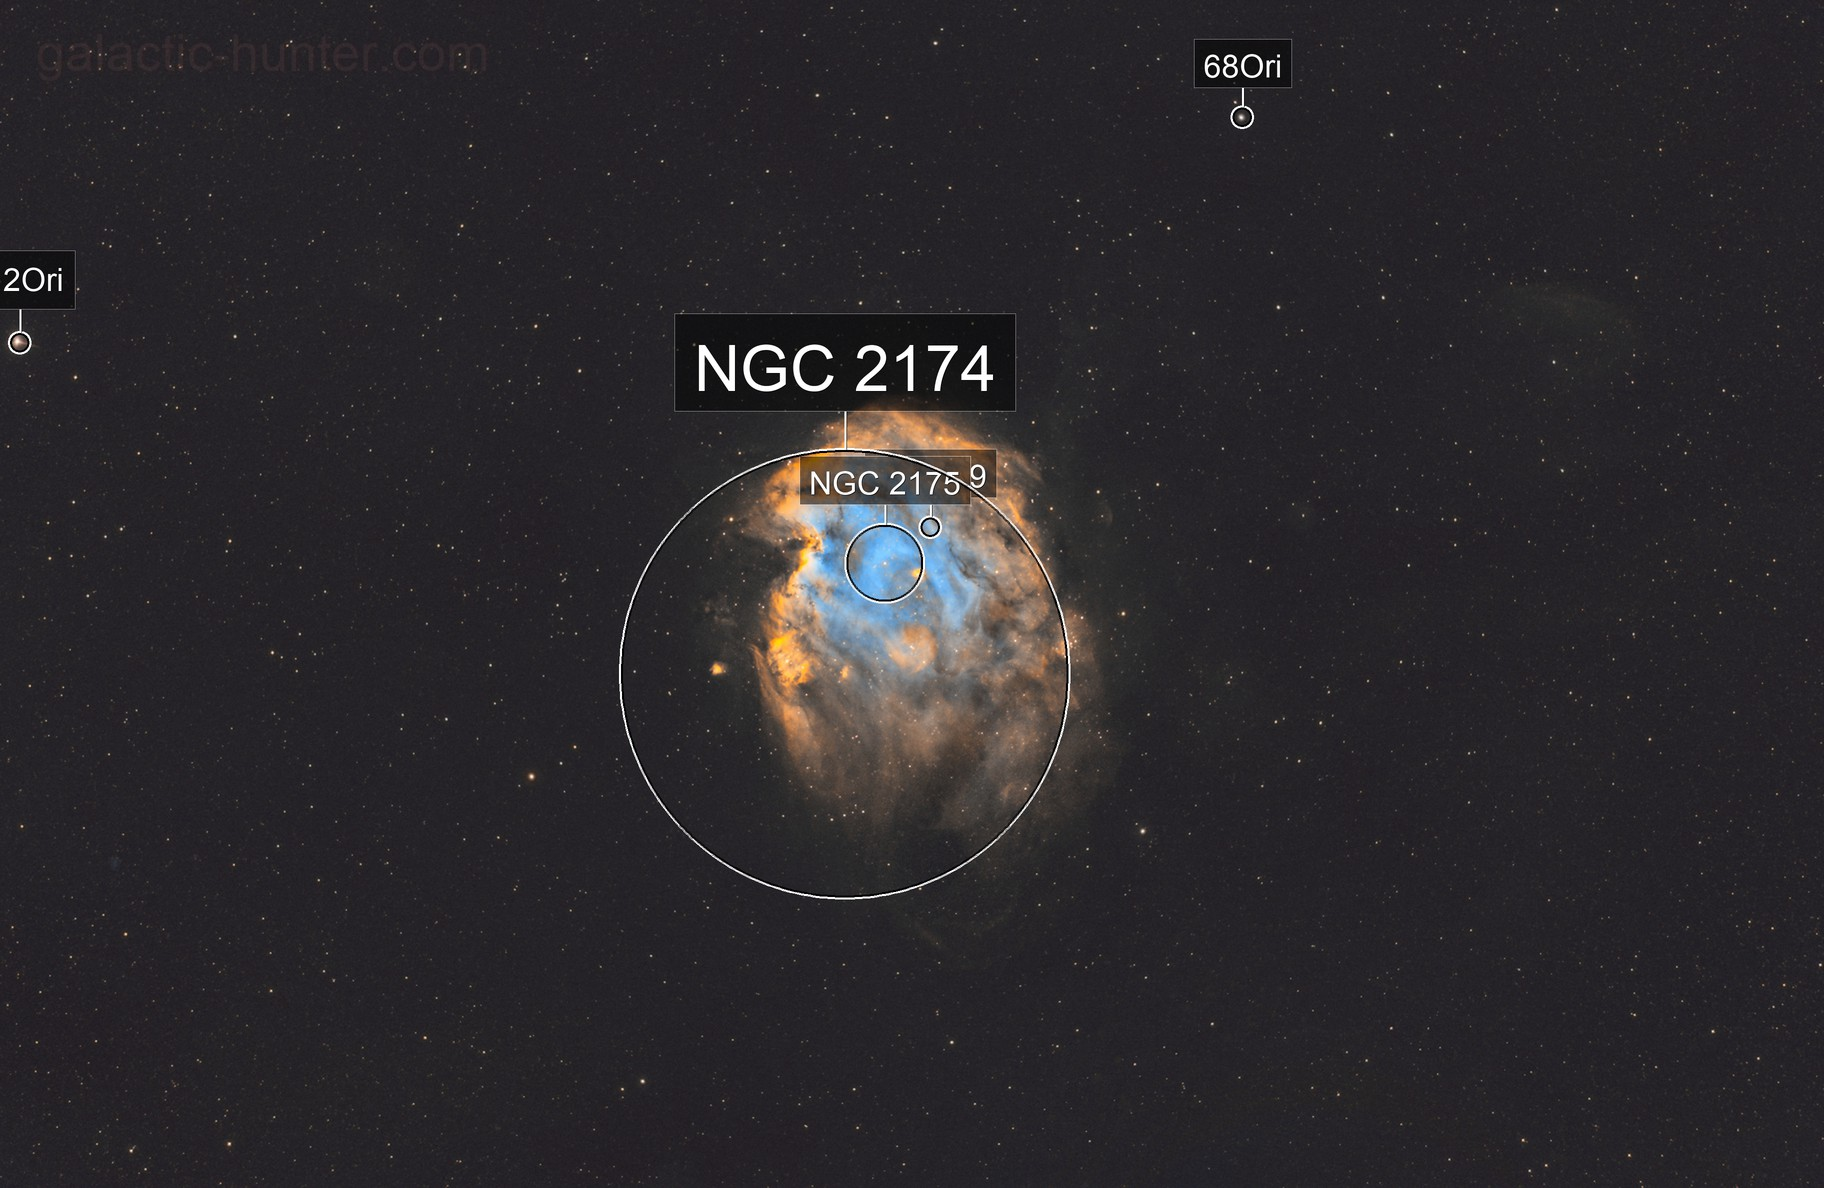 NGC 2174 - The Monkey Head Nebula from the city